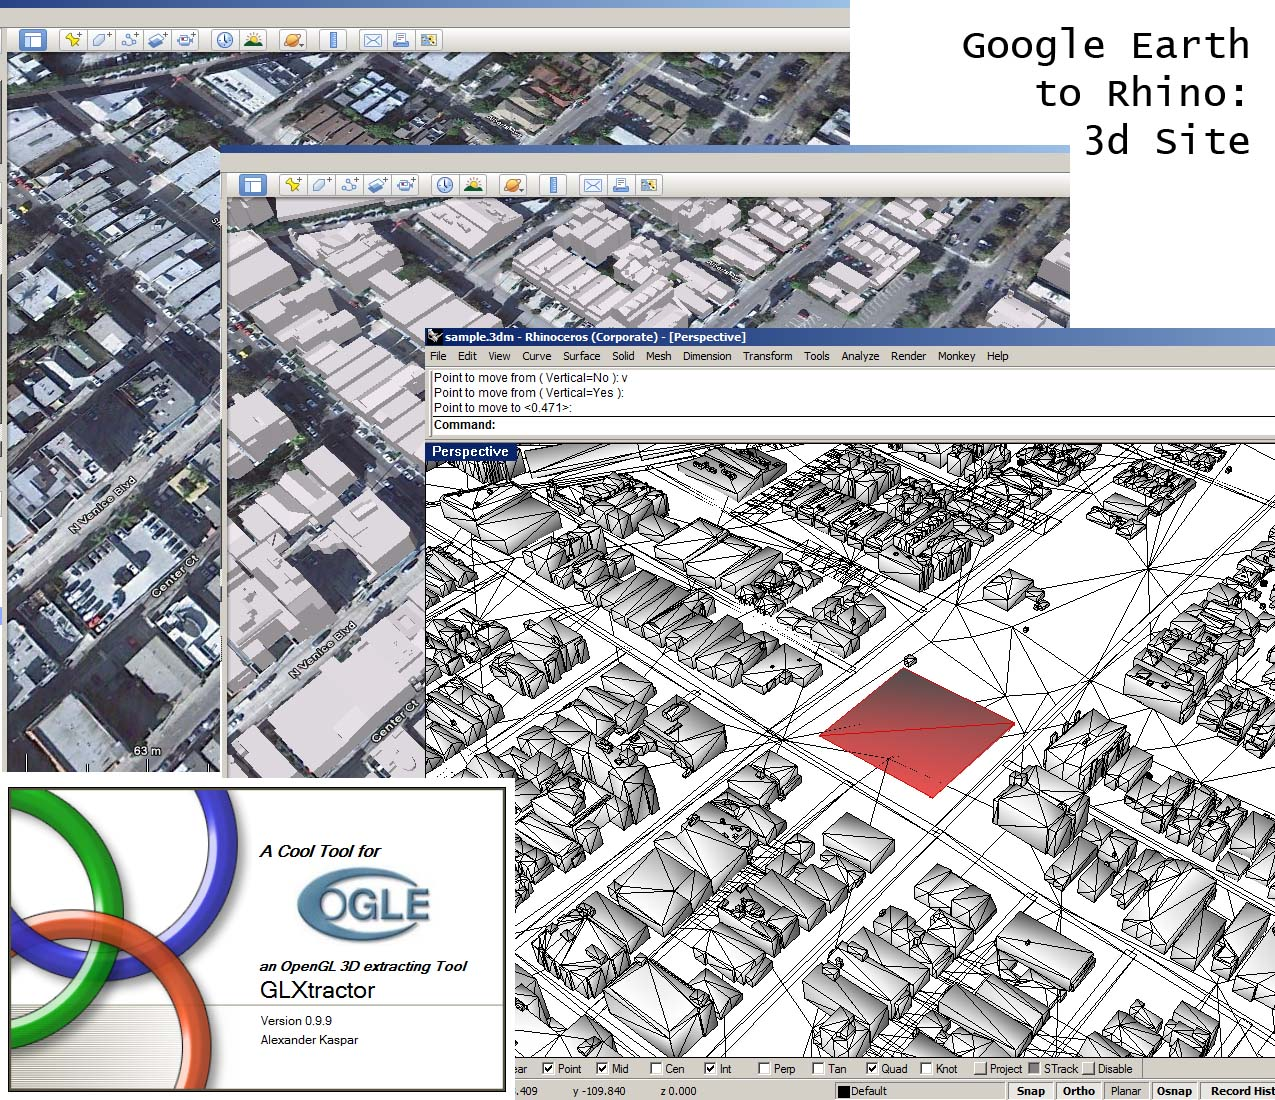 Google Introduces New Application Version of 3D Modeling